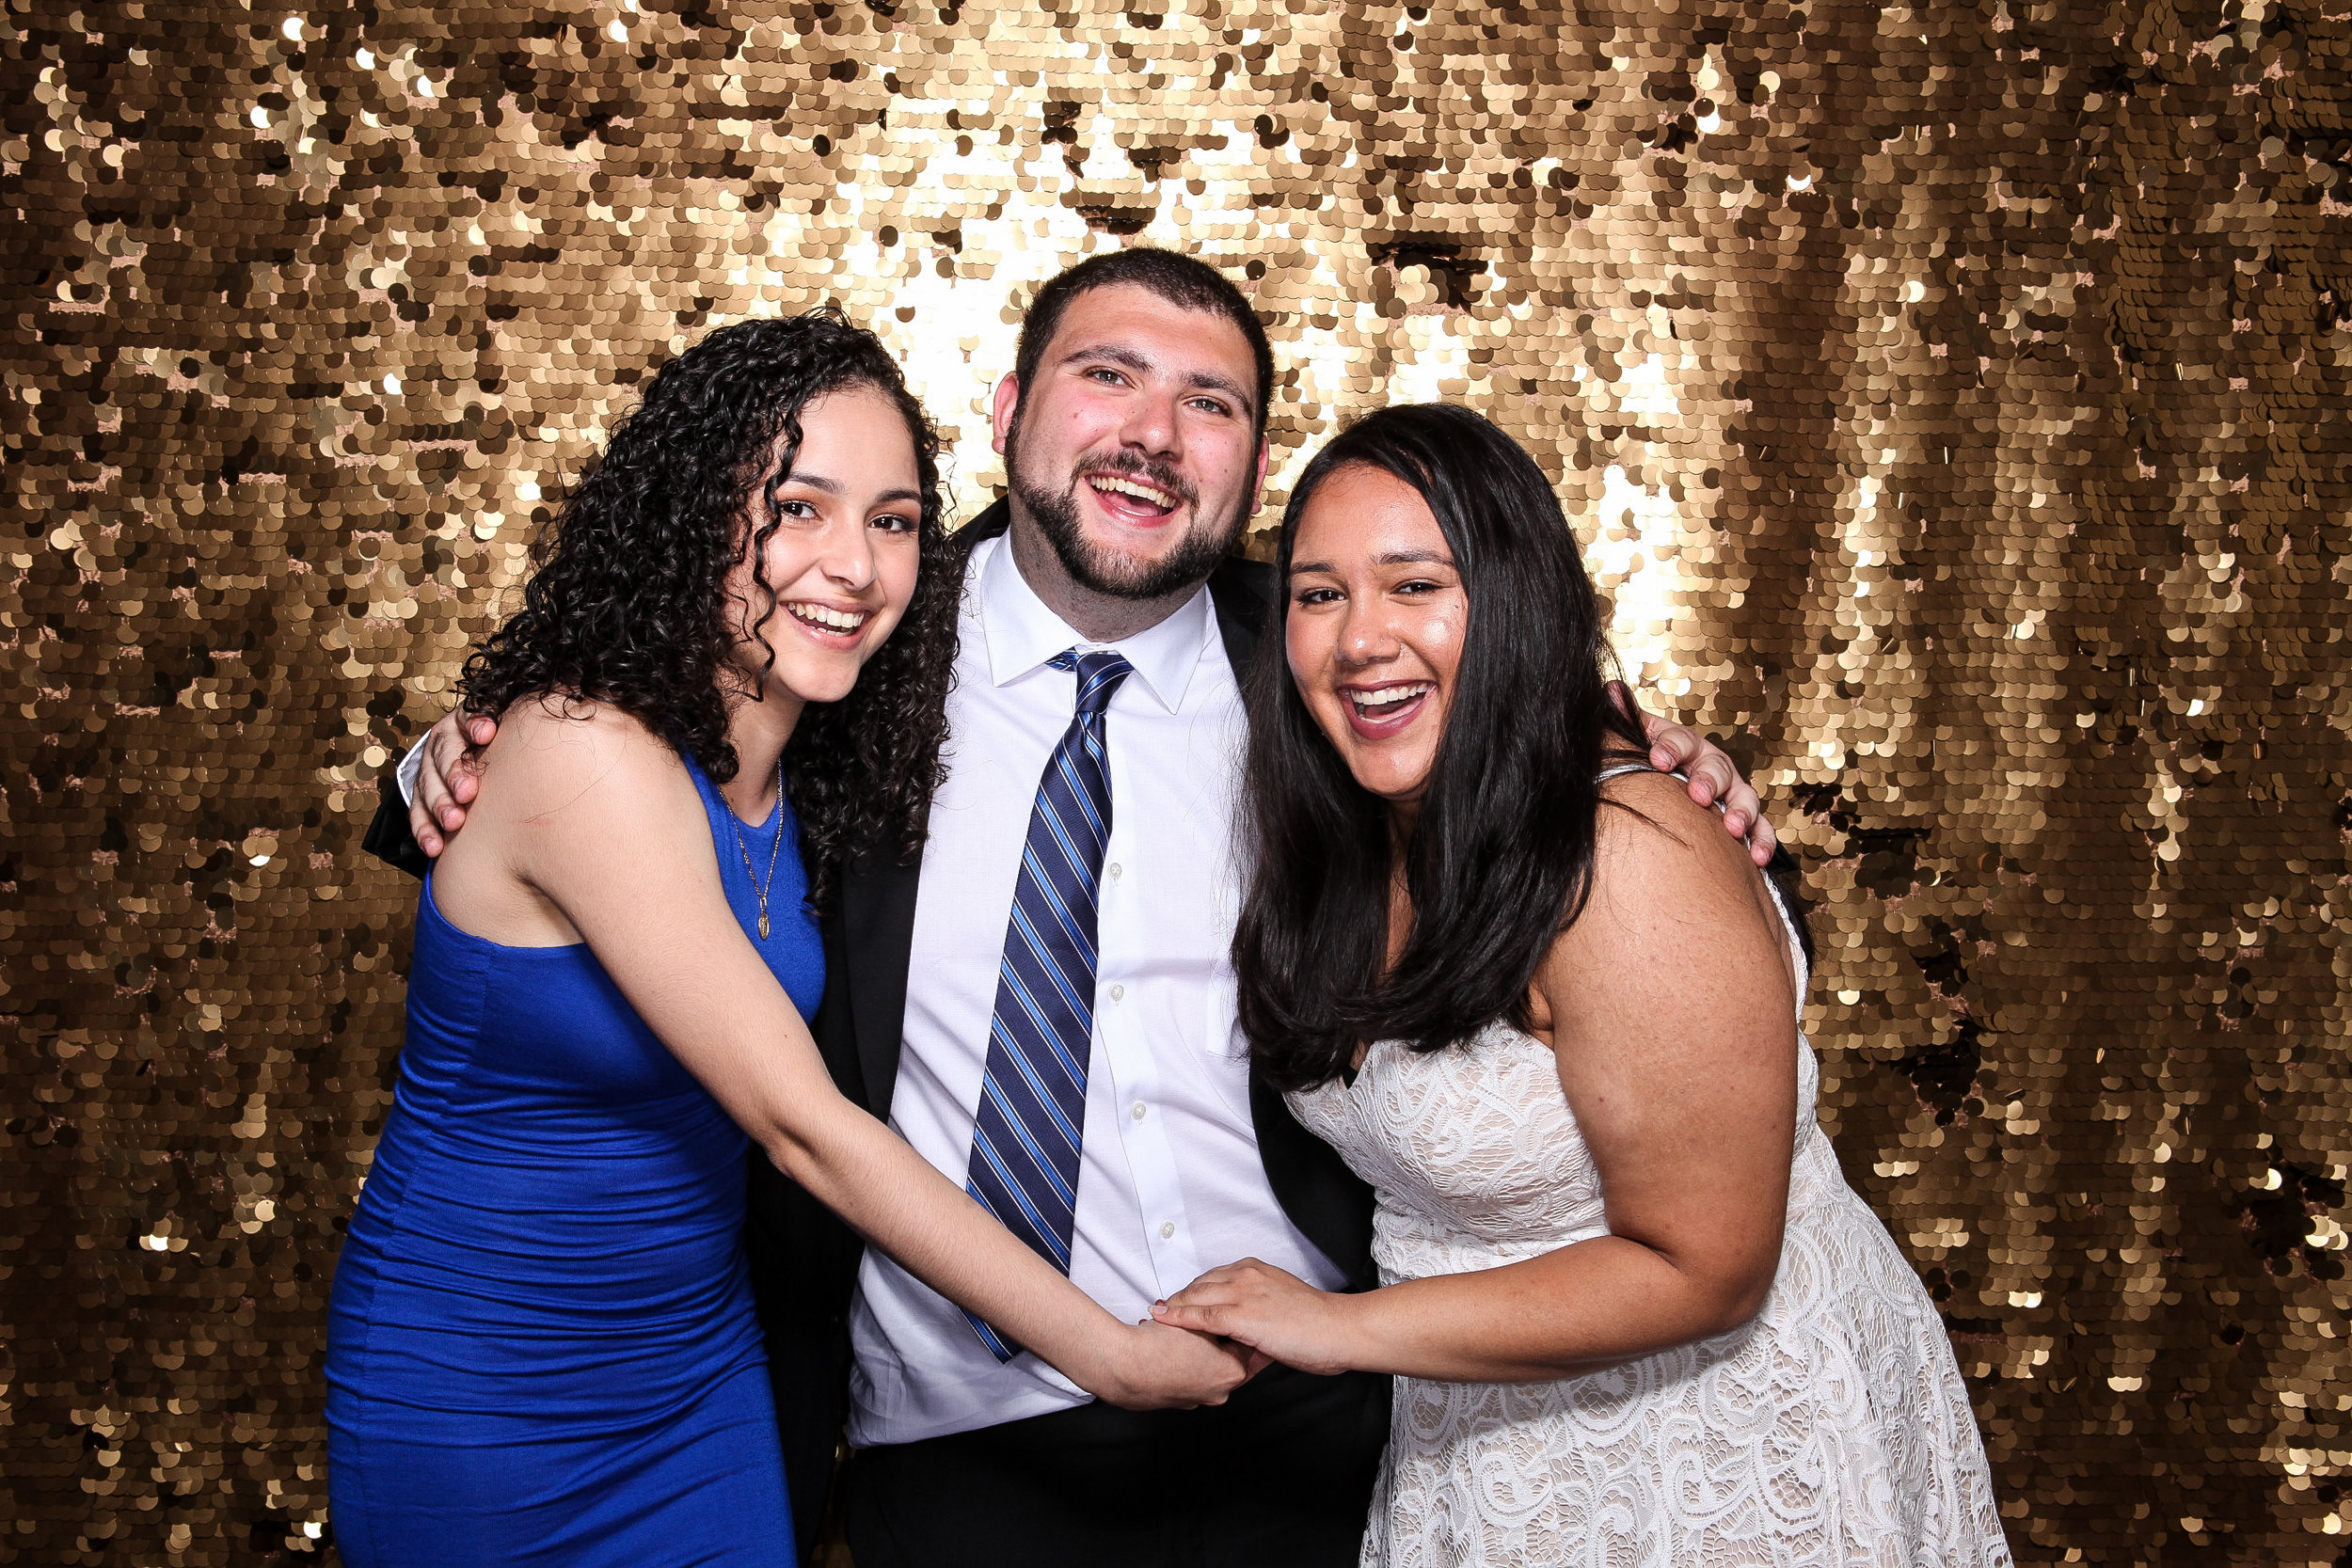 20190503_Adelphi_Senior_Formal-389.jpg